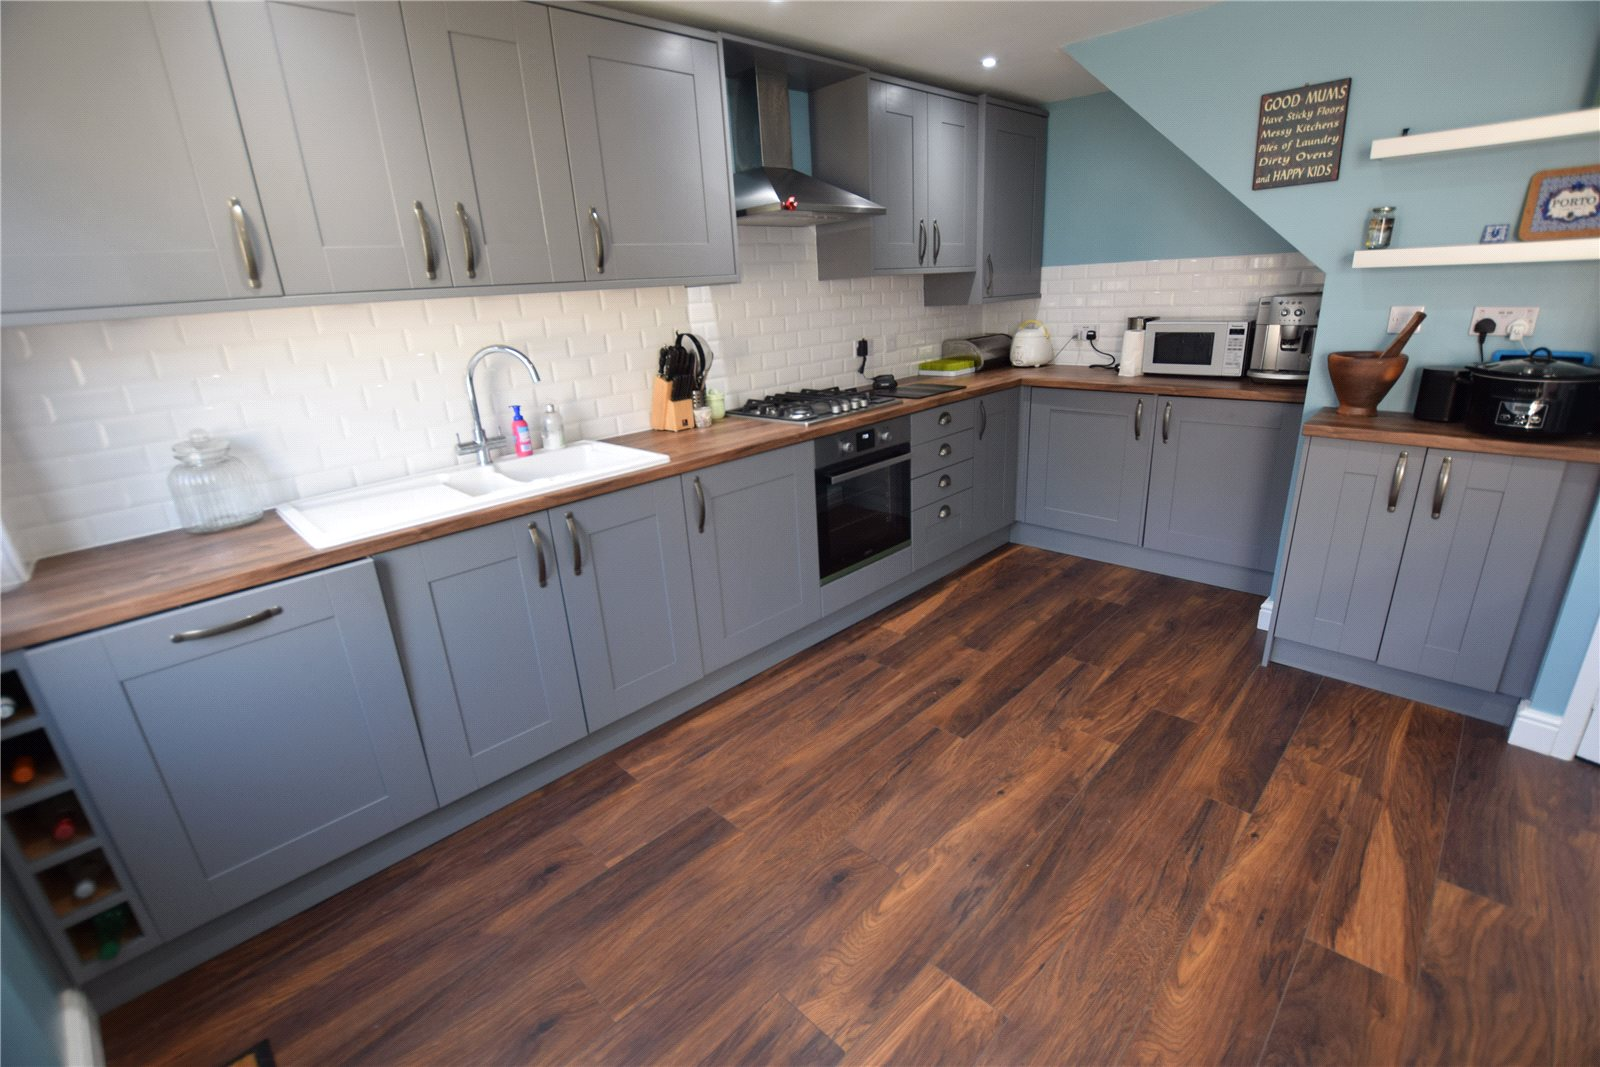 Property for sale in Wortley, interior kitchen of home